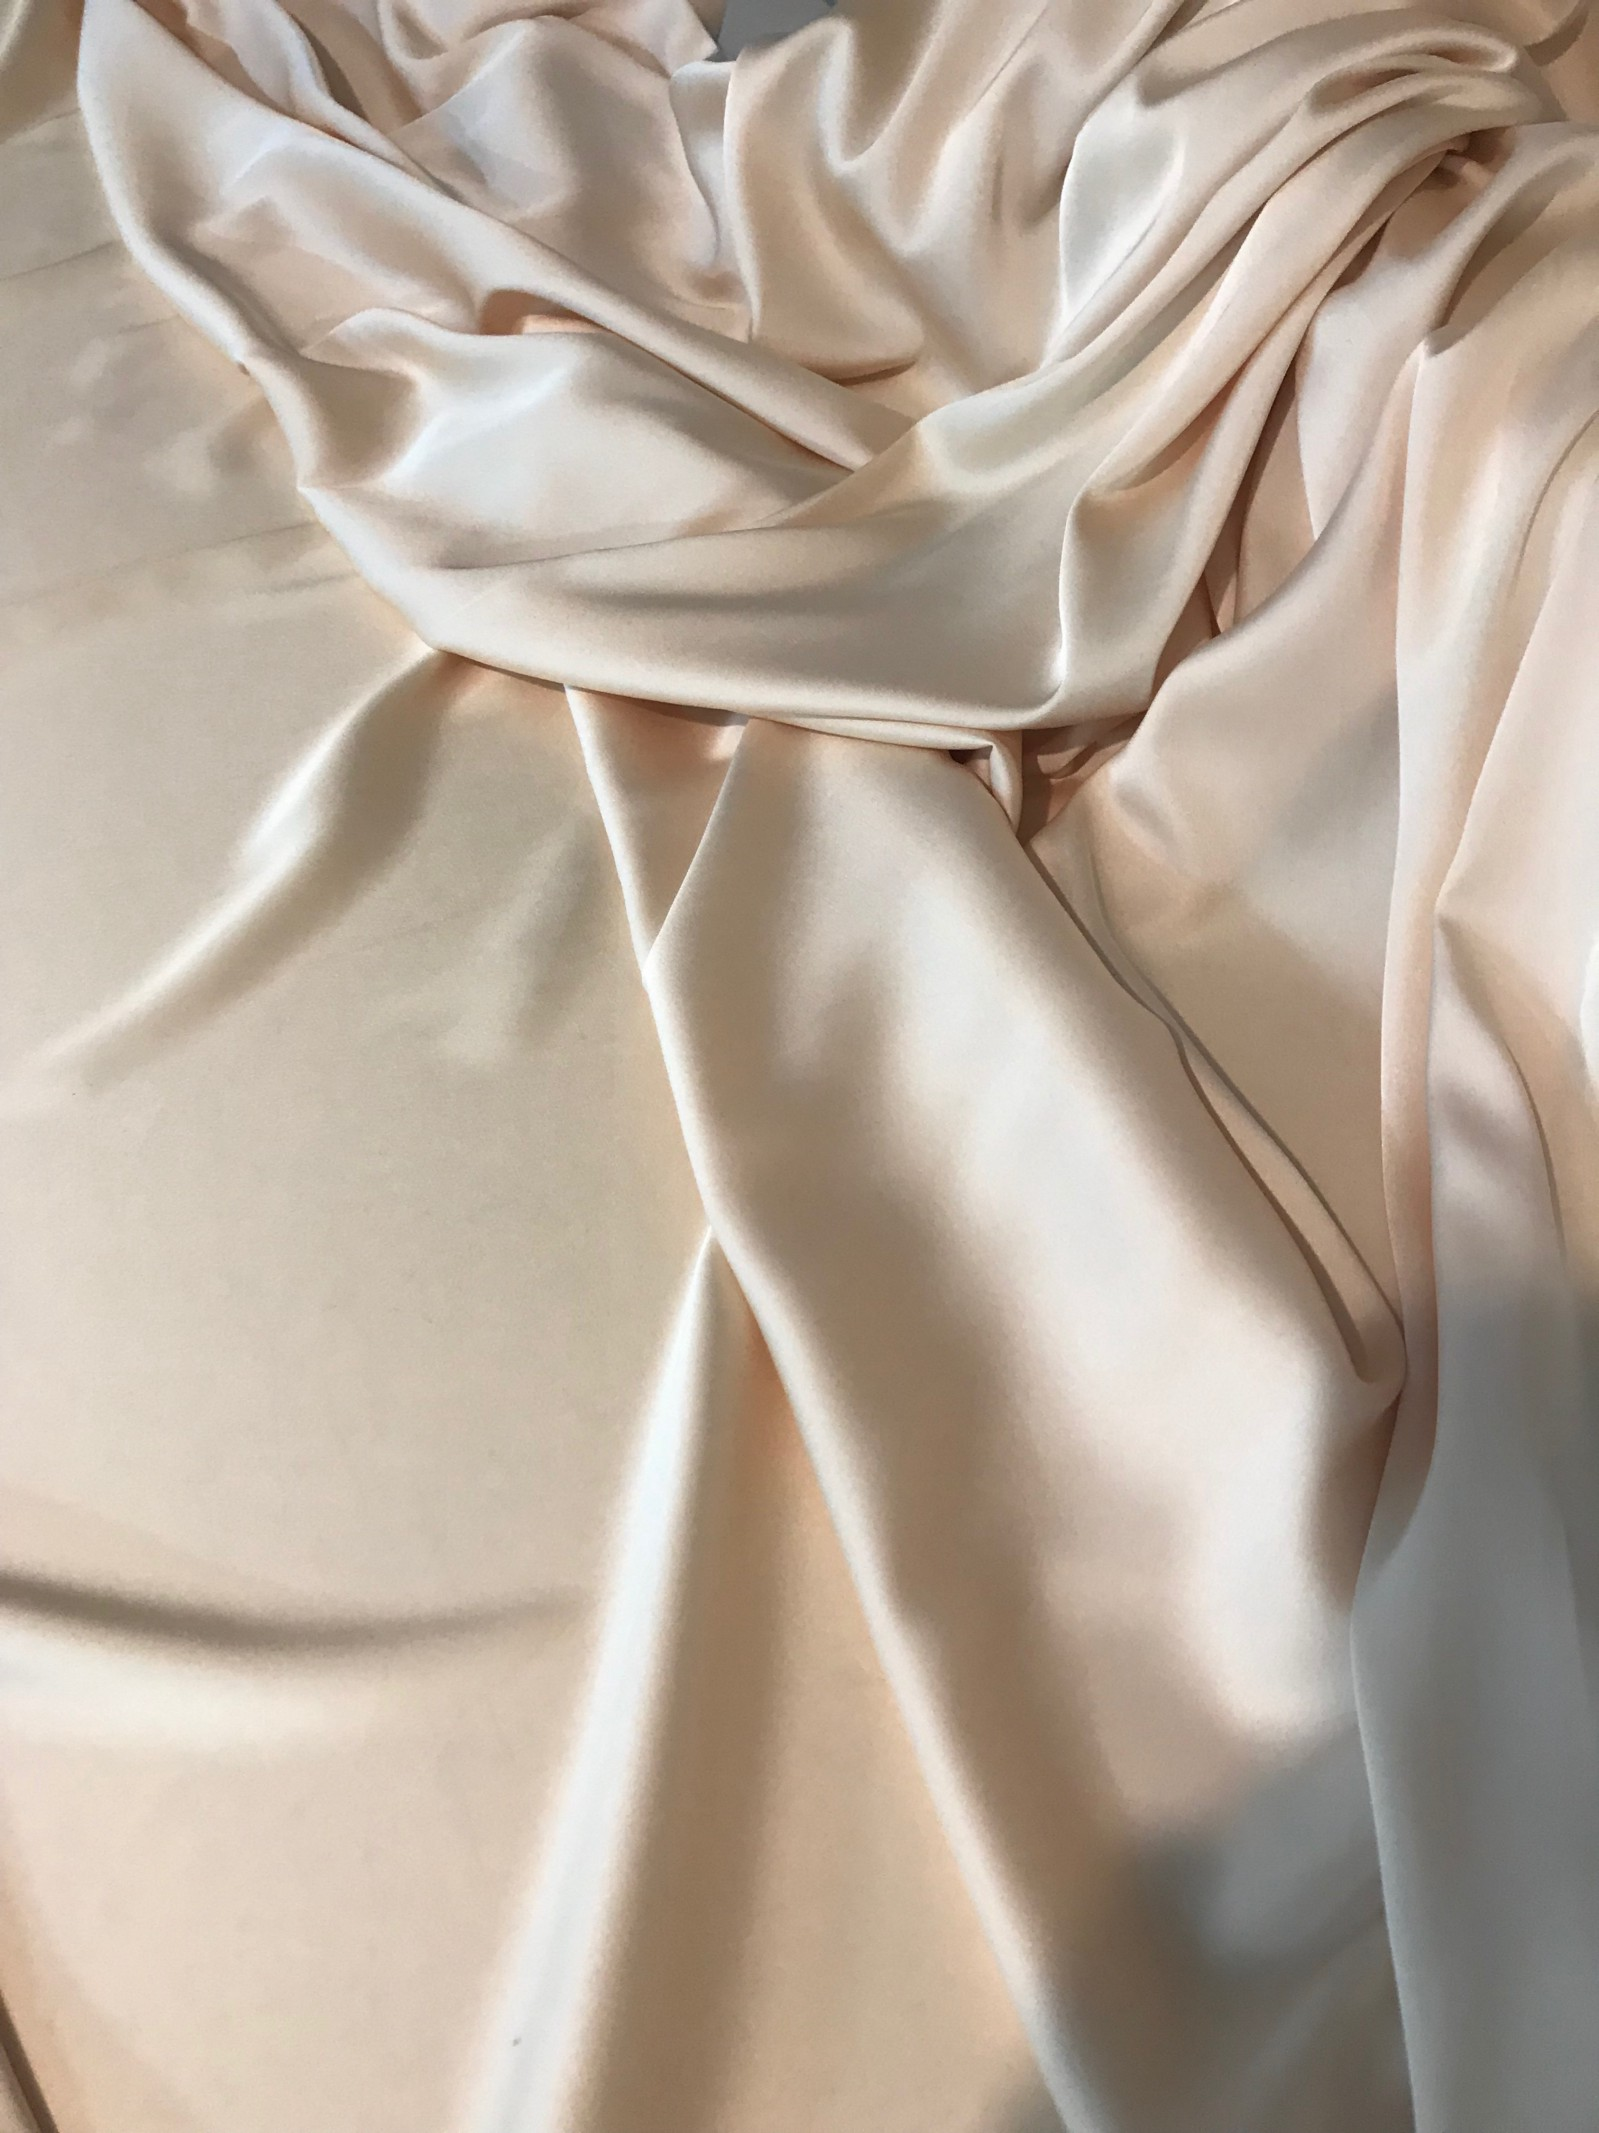 Lemon silk satin fabric by Bastet Noir